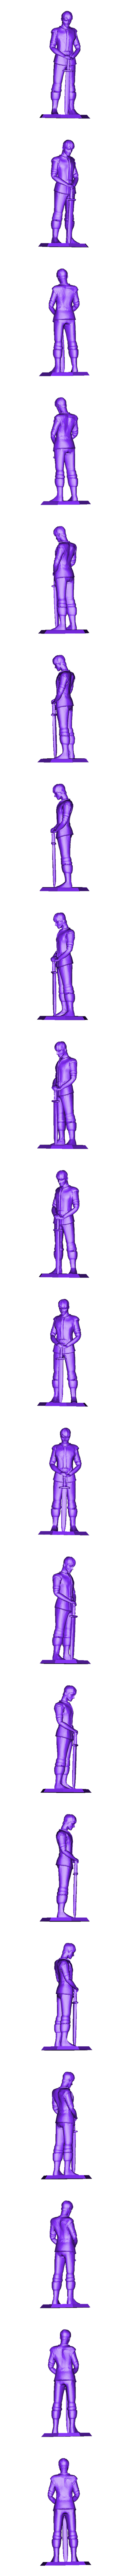 YoungLord_LeaningOnSword.stl Download free STL file Young Hero (multiple poses) • 3D print object, stockto